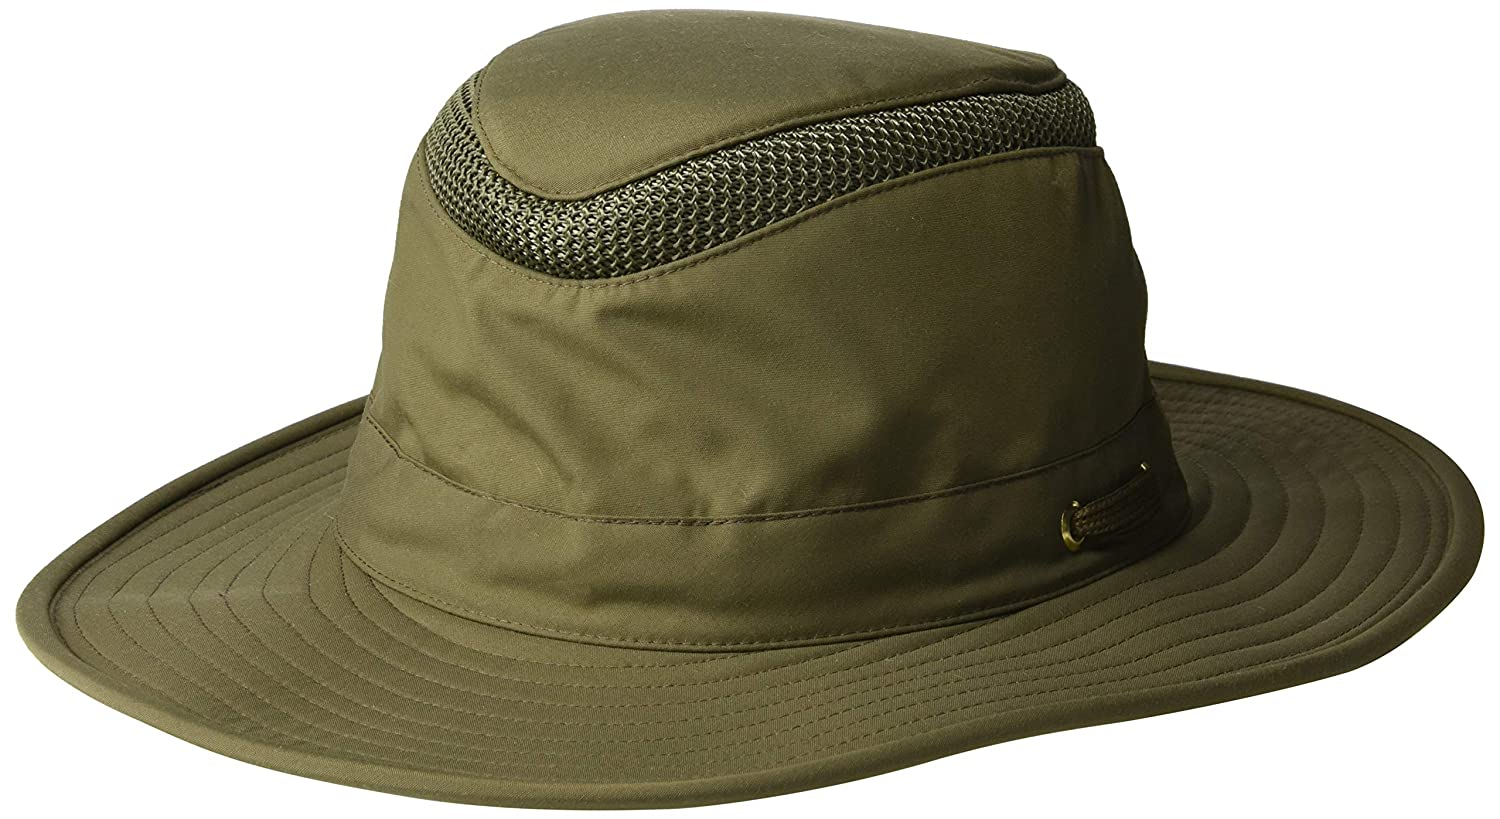 6c7eb42251933 Amazon.com  Tilley Endurables LTM6 Airflo Hat  Clothing